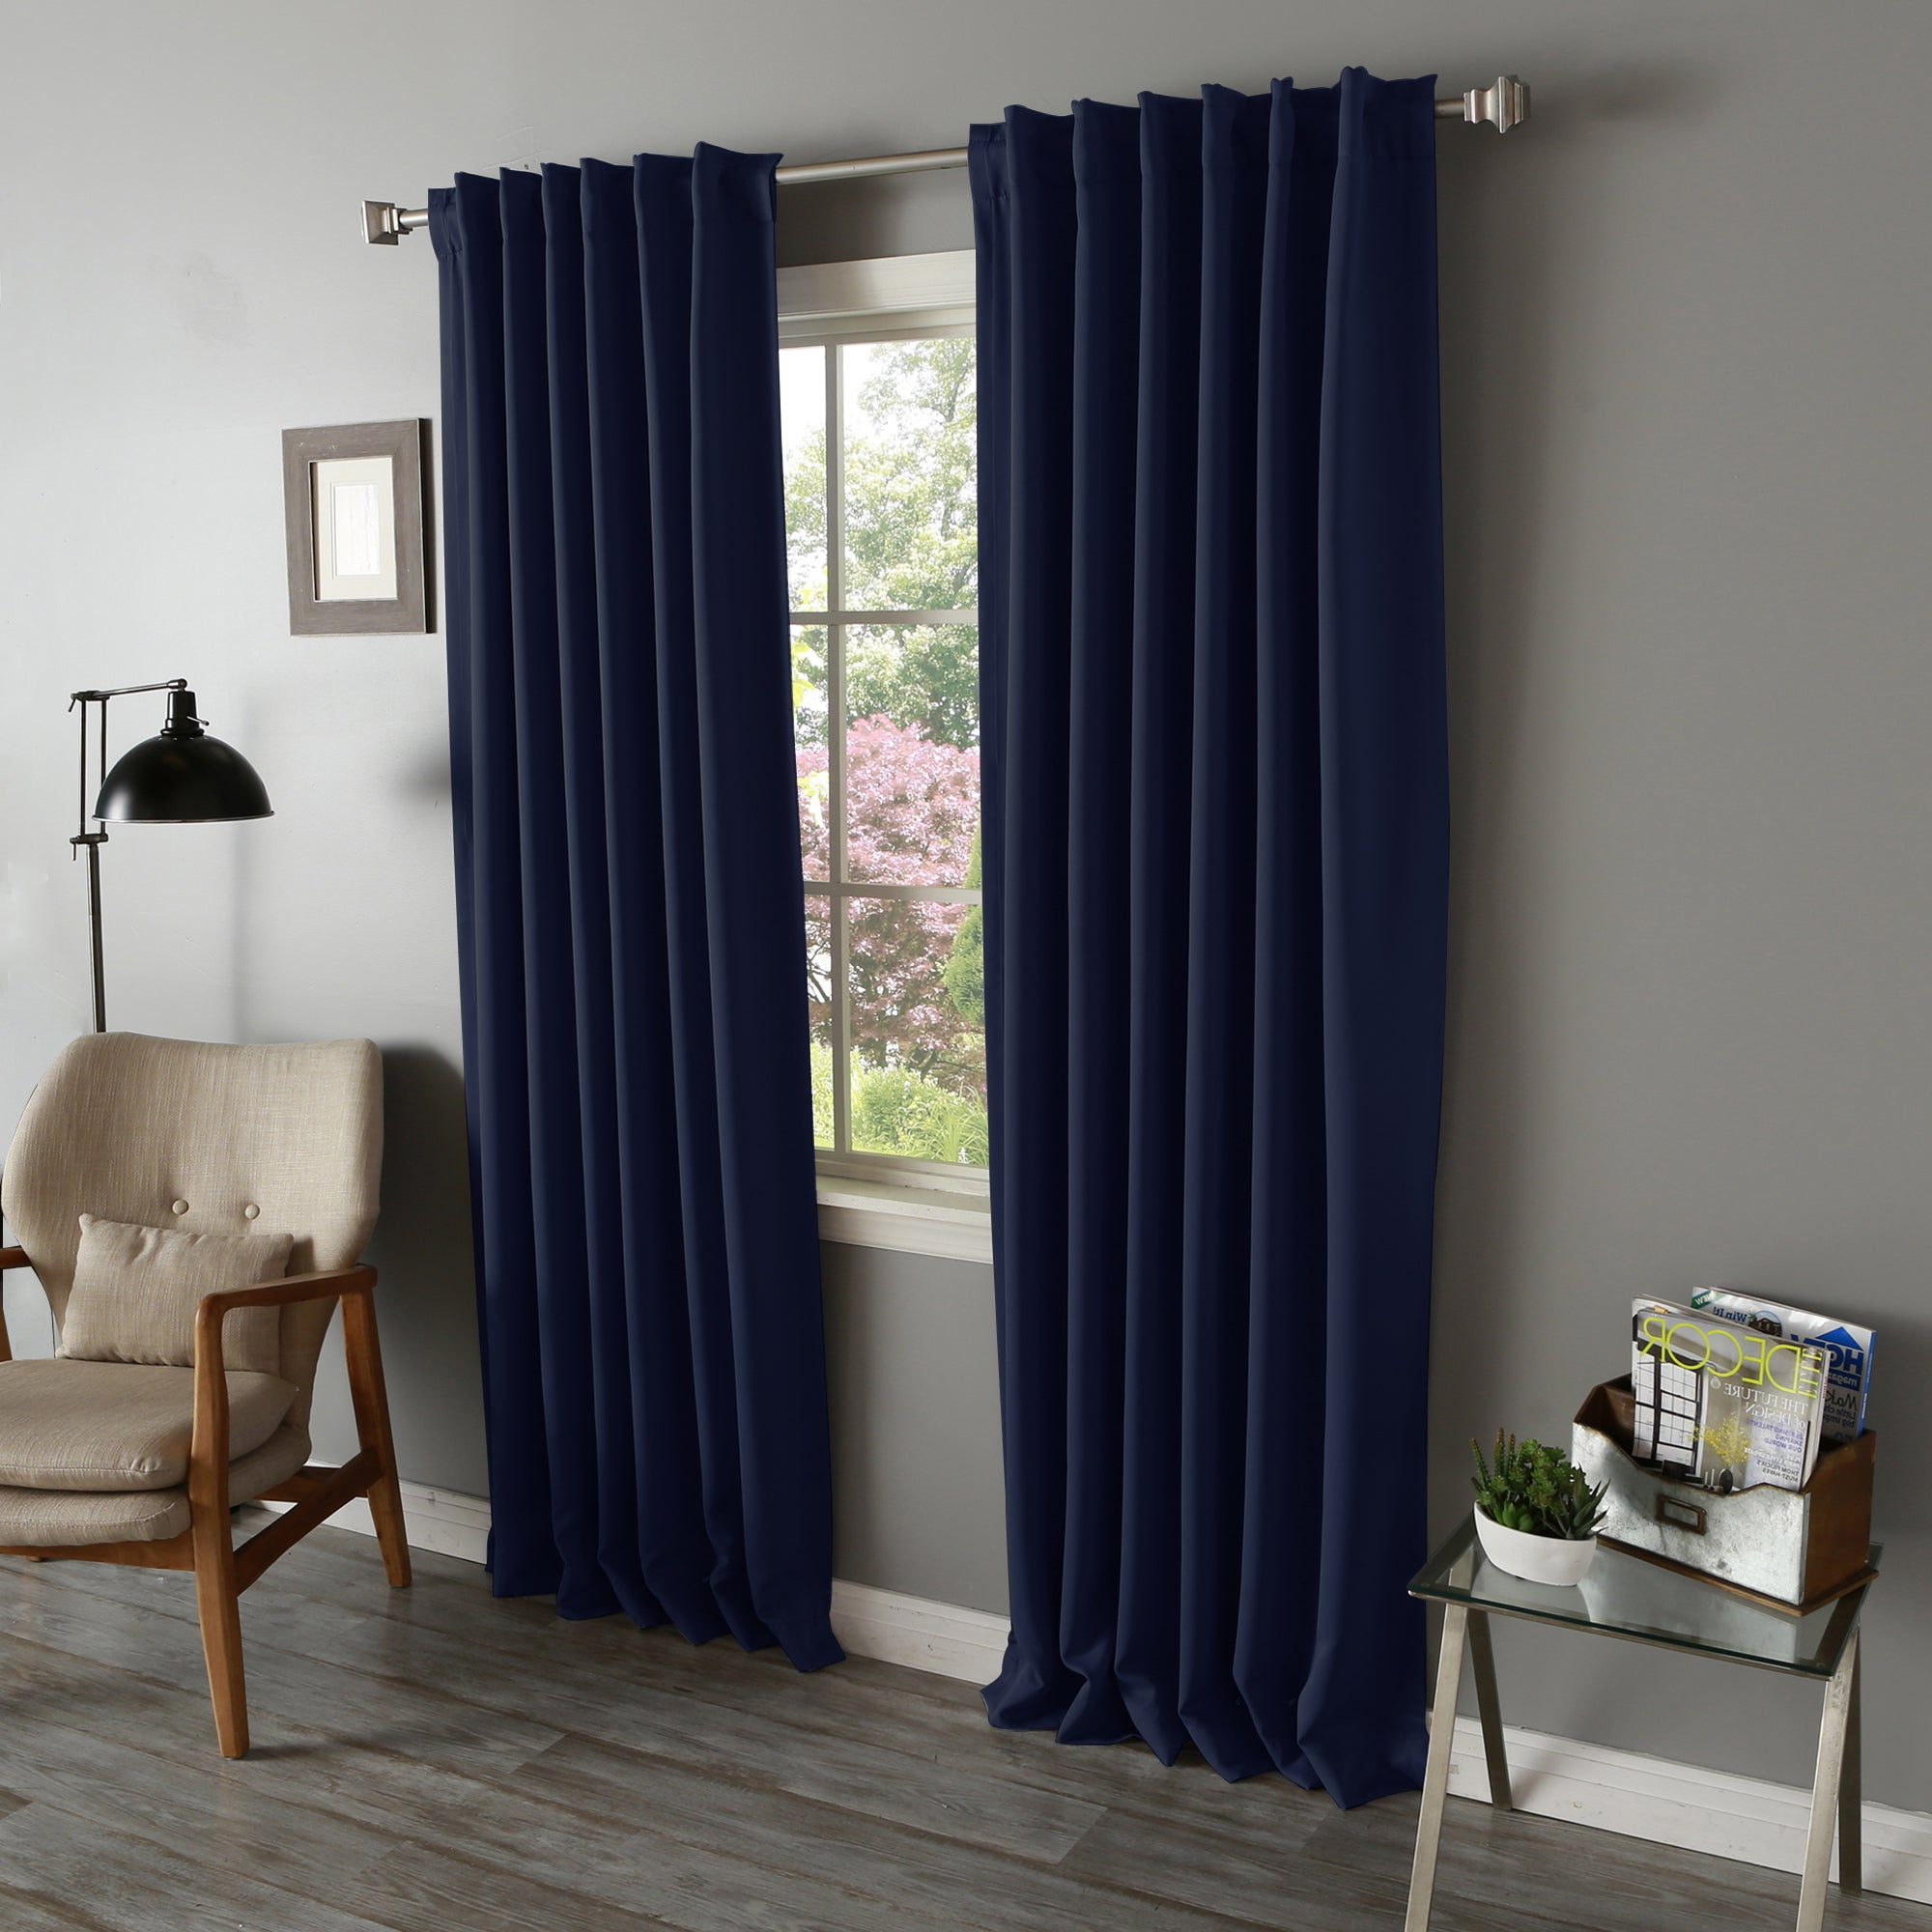 Trendy Solid Insulated Thermal Blackout Long Length Curtain Panel Pairs In Aurora Home Solid Insulated Thermal Blackout Long Length Curtain Panel Pair (View 9 of 20)